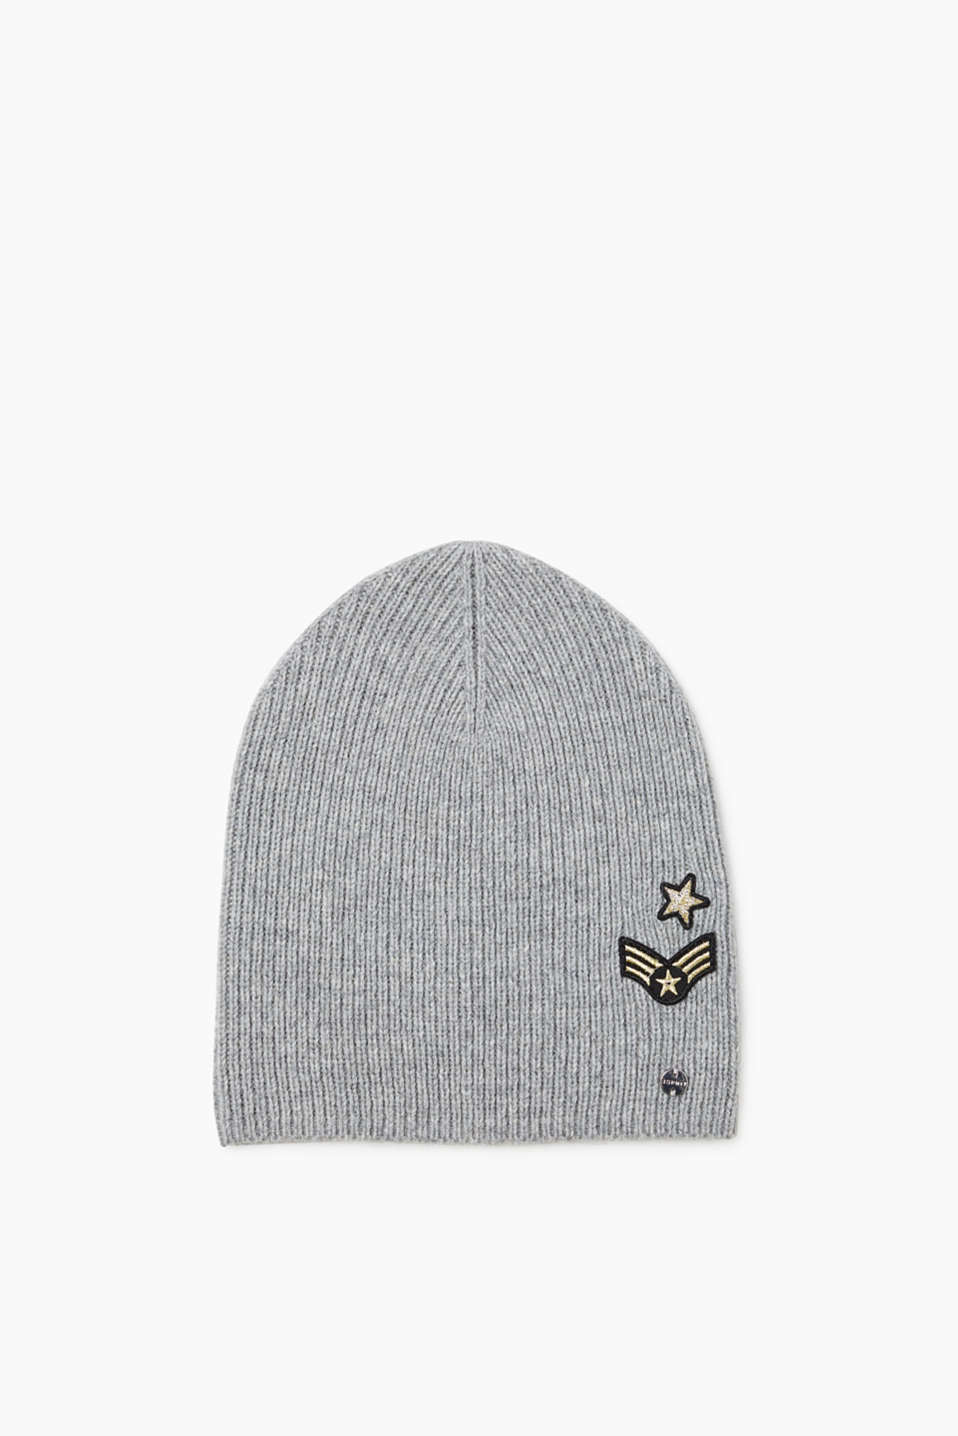 Warm and cool! Beanie with cool metallic patches made of rib knit yarn with wool and merino